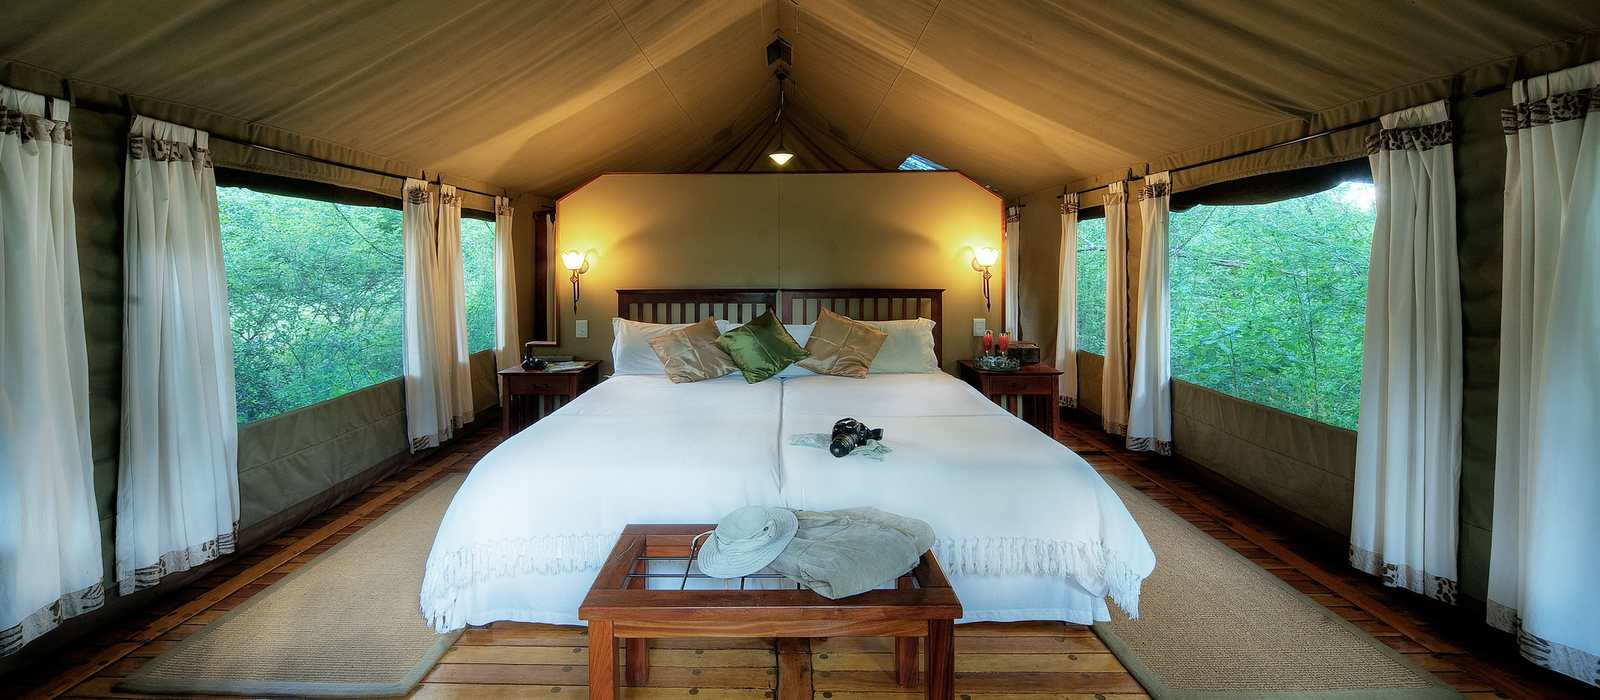 Royal Tree Lodge tent interior